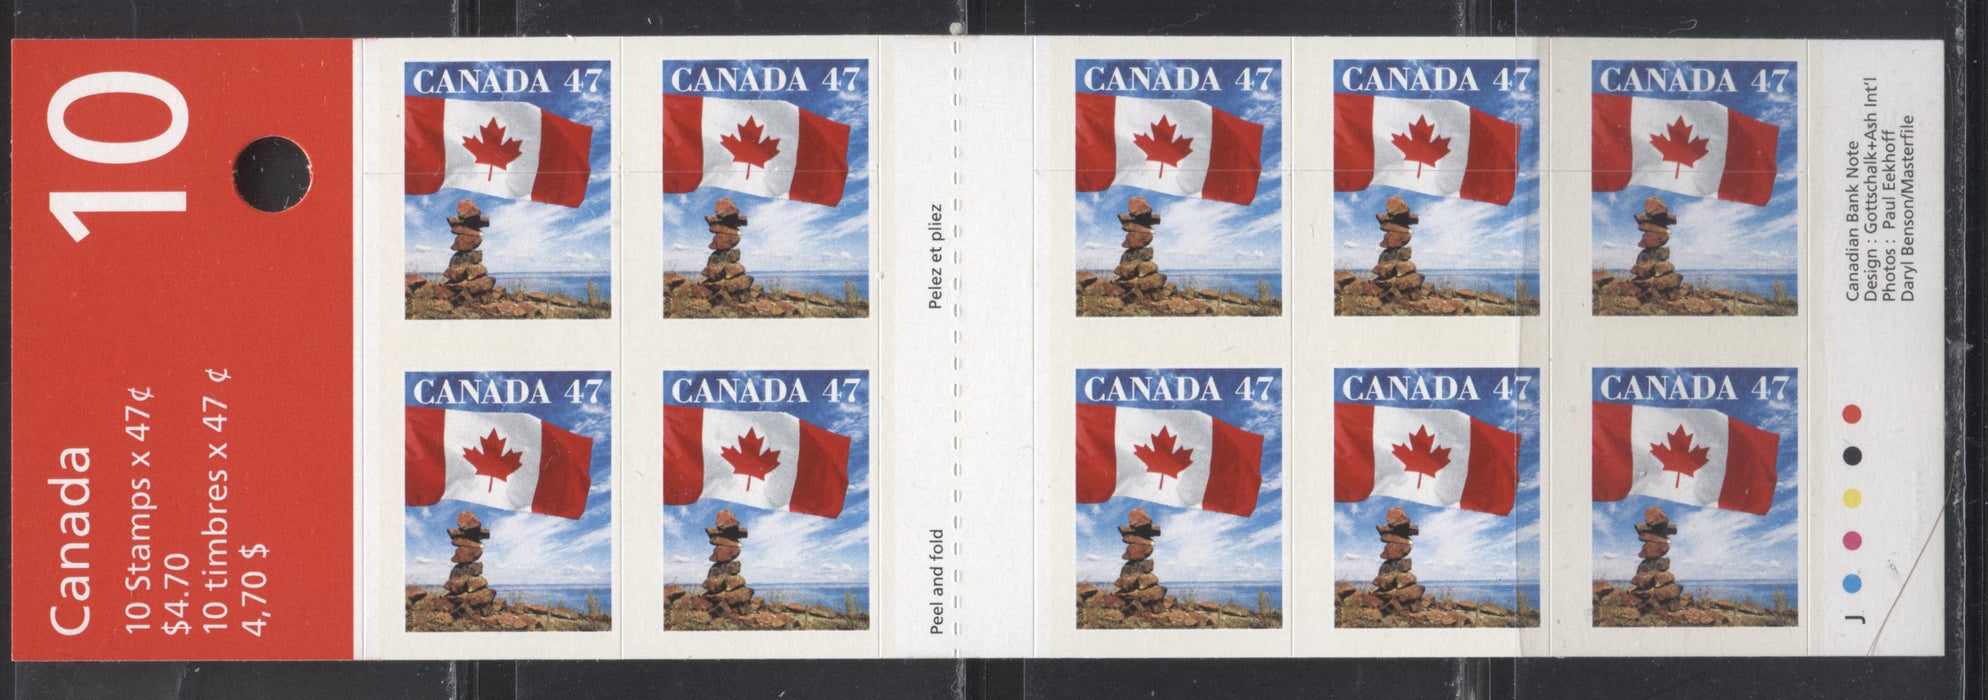 "Canada #BK236Aa 1999-2003 Trades & Wildlife Issue, a VFNH $4.70 Booklet Containing 47c Flag Over Inukshuk, Field Stock, LF JAC Paper, MF Cover, ""Moving?"" Ad on Back, Misplaced Die Cutting, Pattern 1"